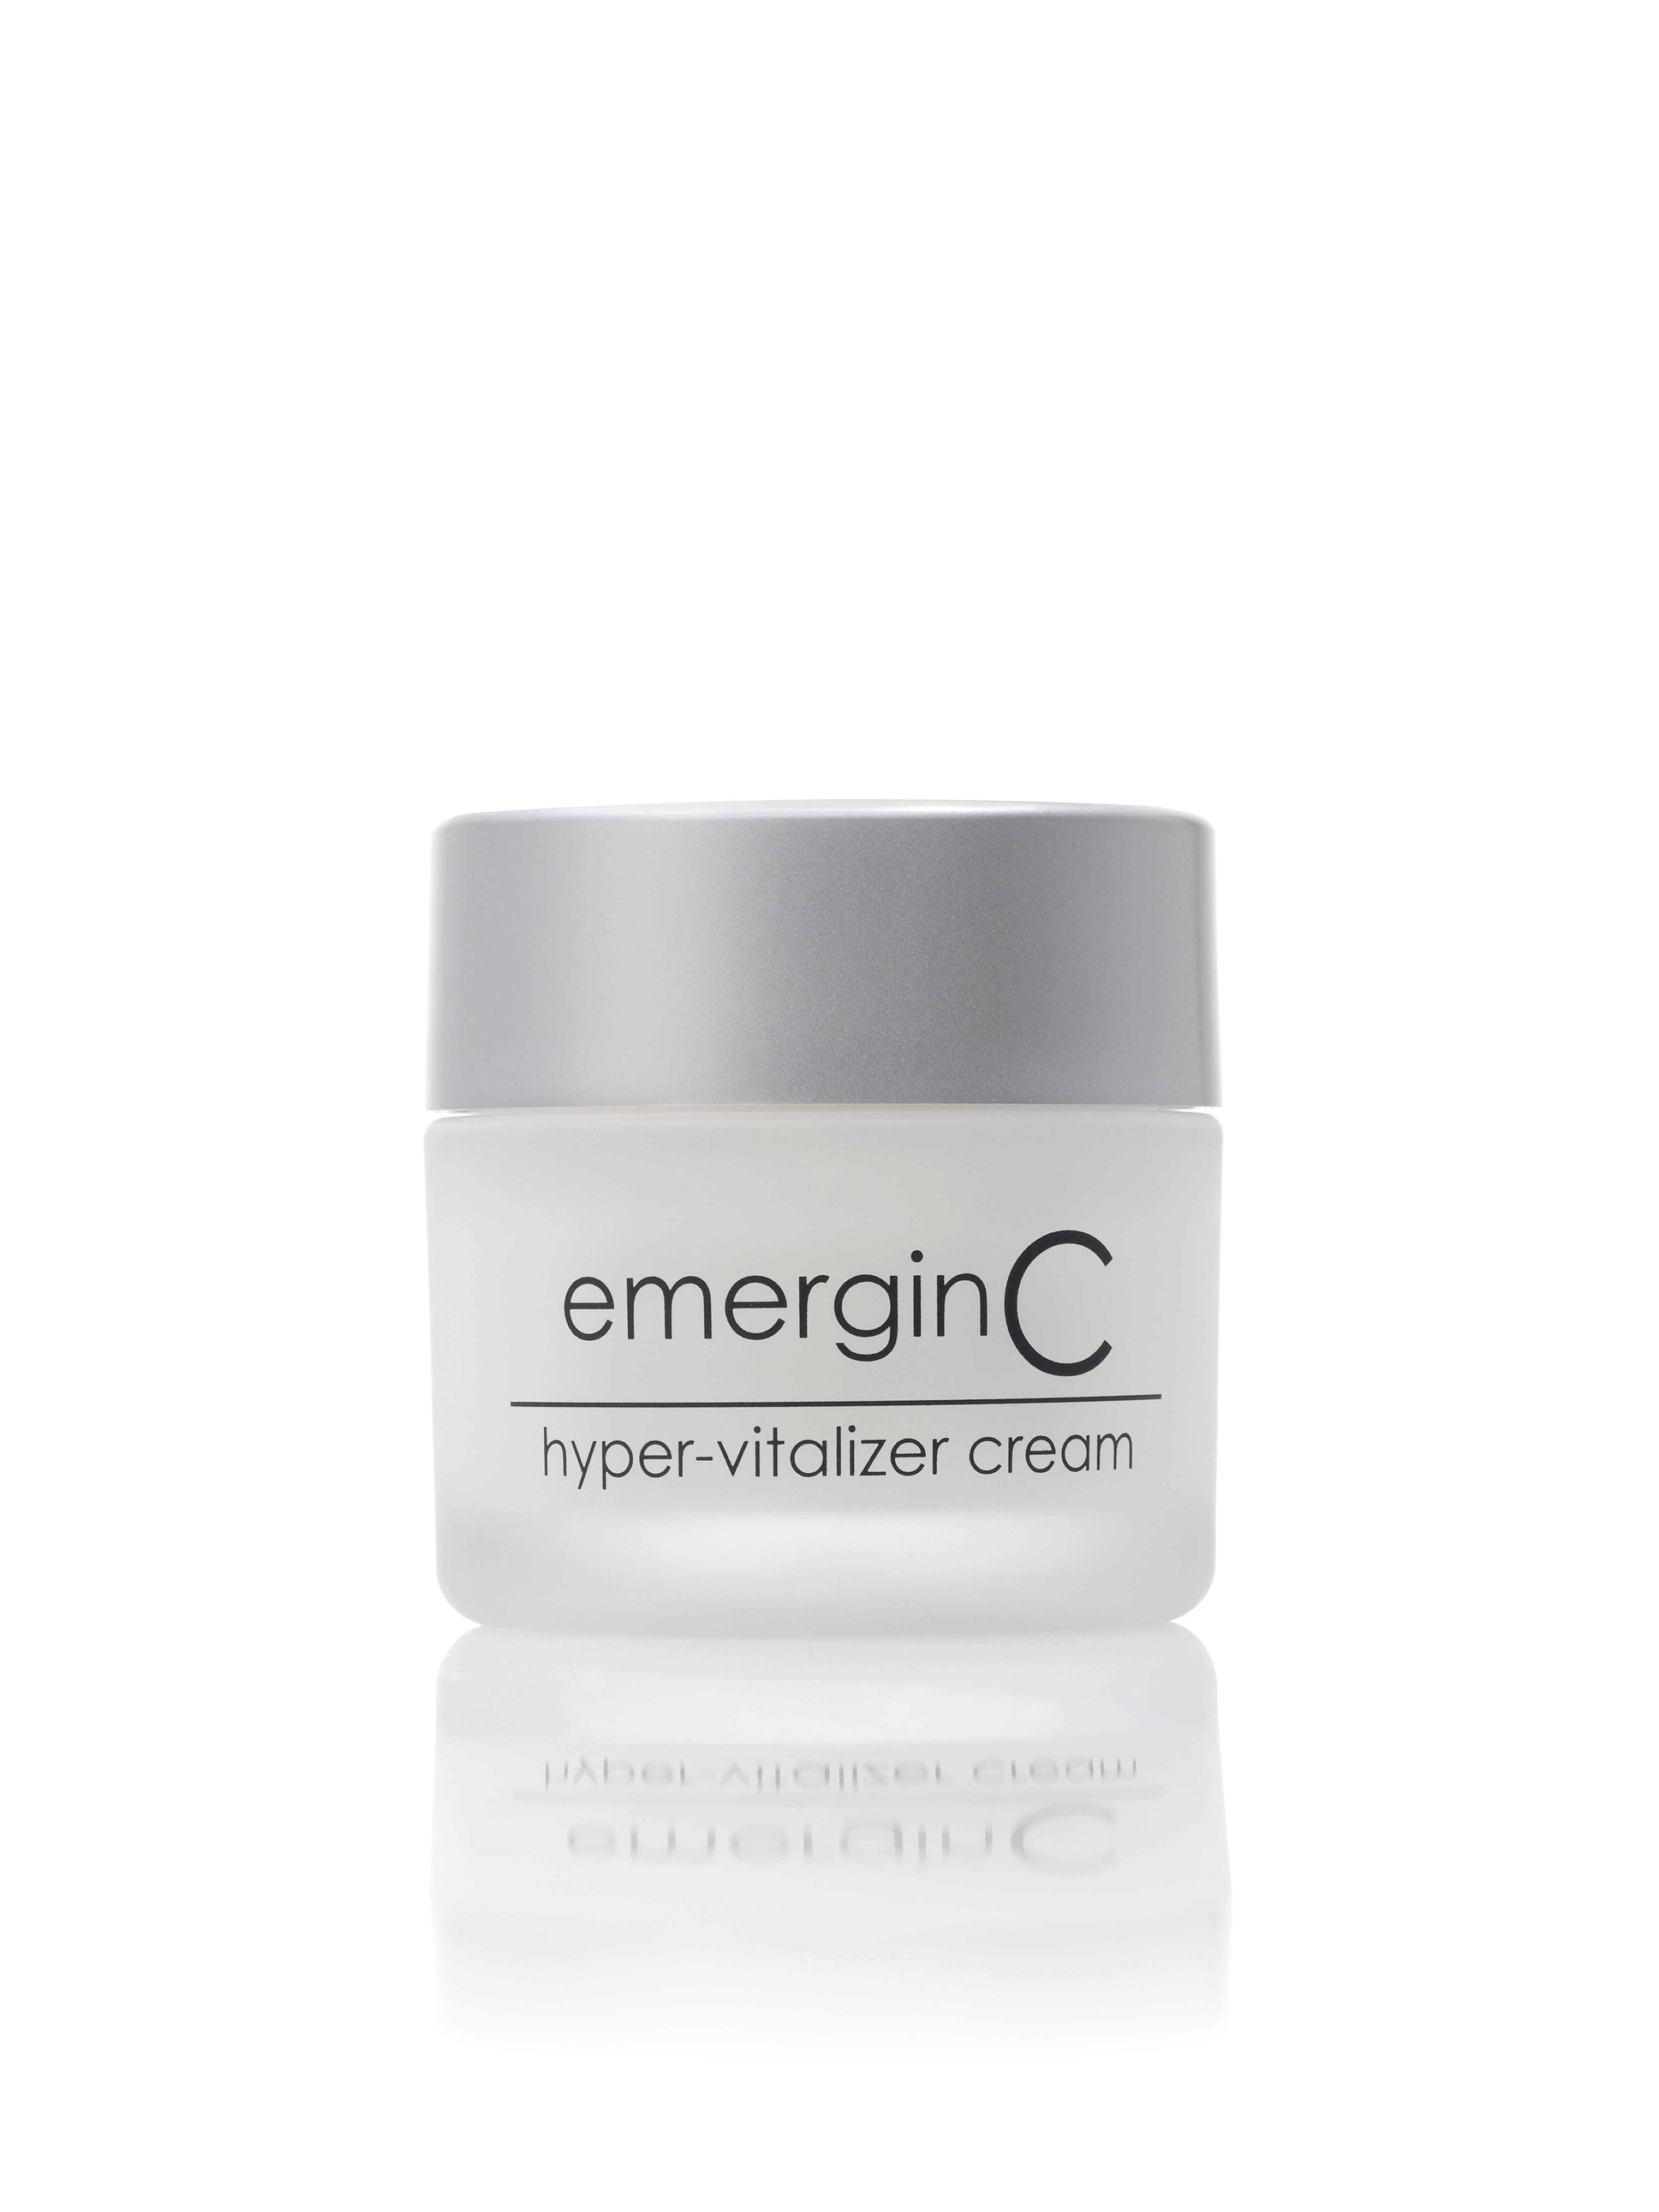 Pin On Emerginc Pure Potent Cosmeceutical